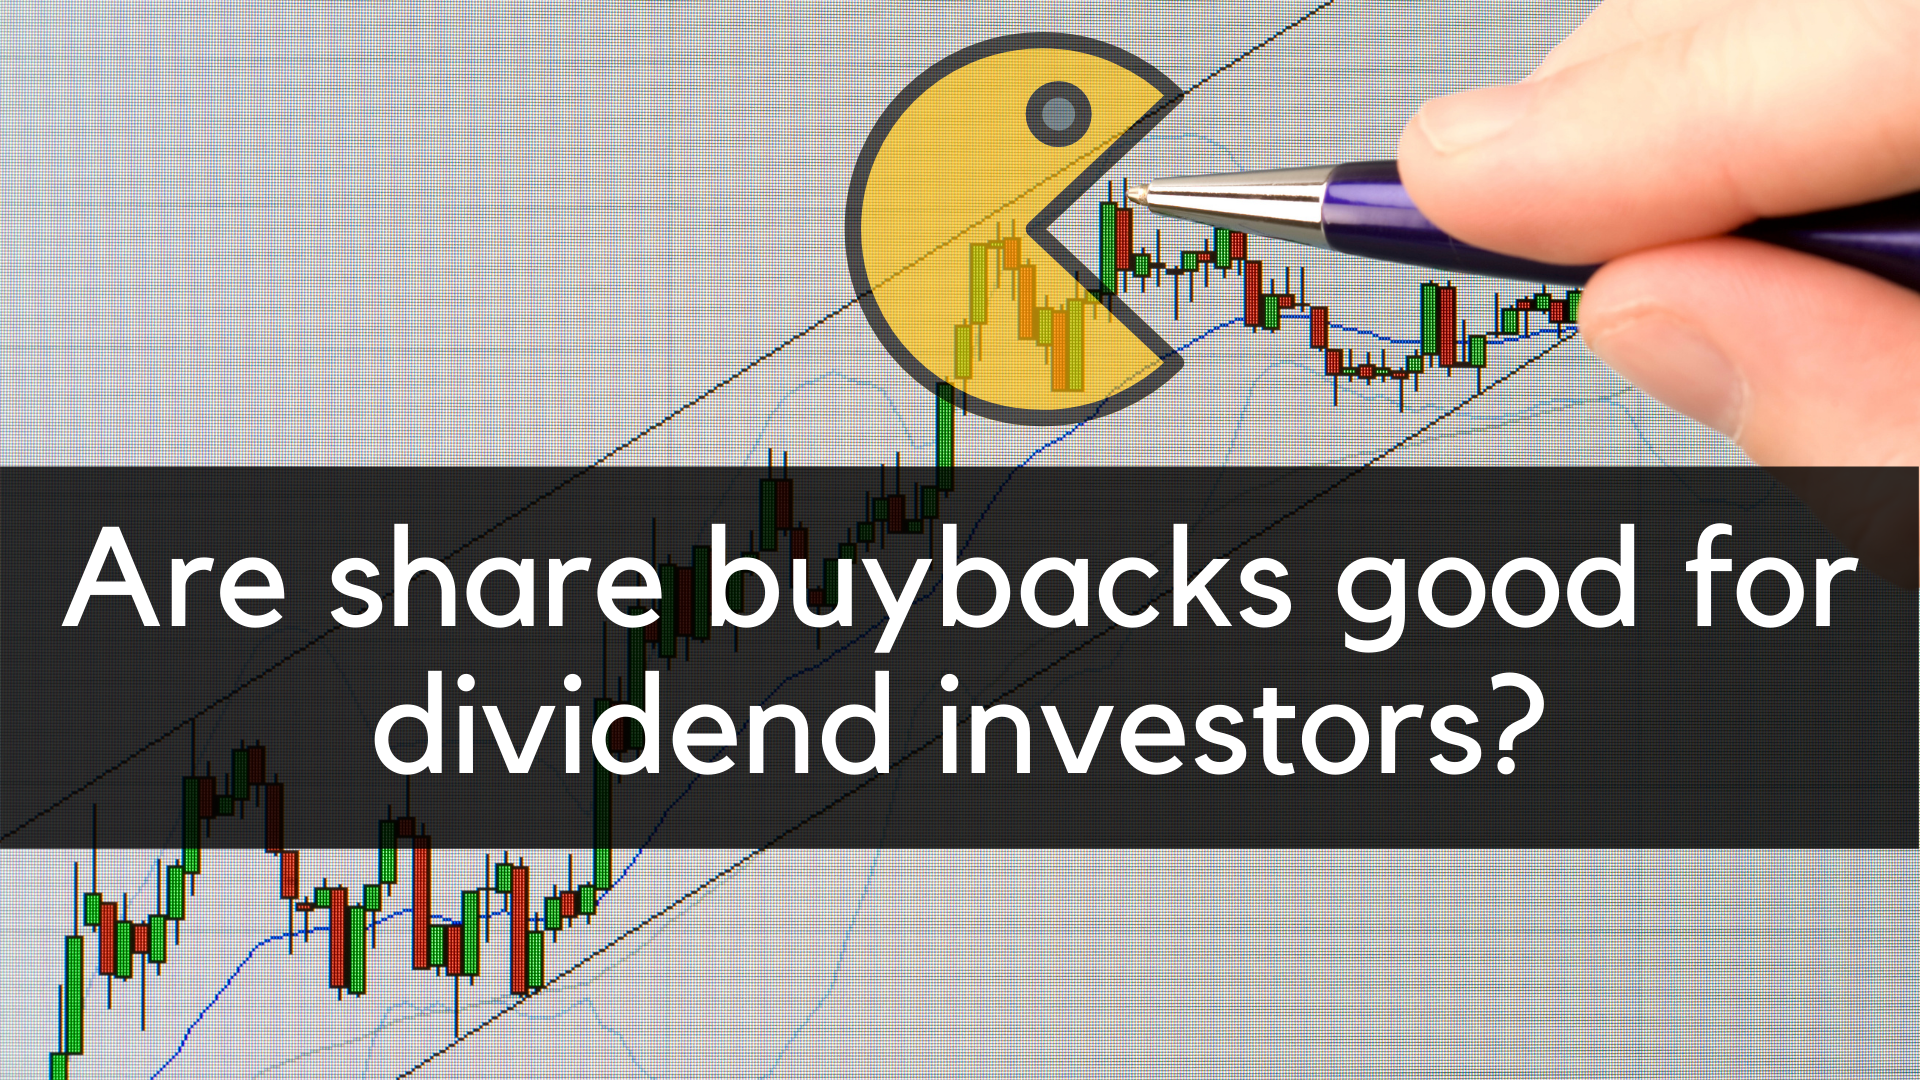 Are share buybacks good for dividend investors?